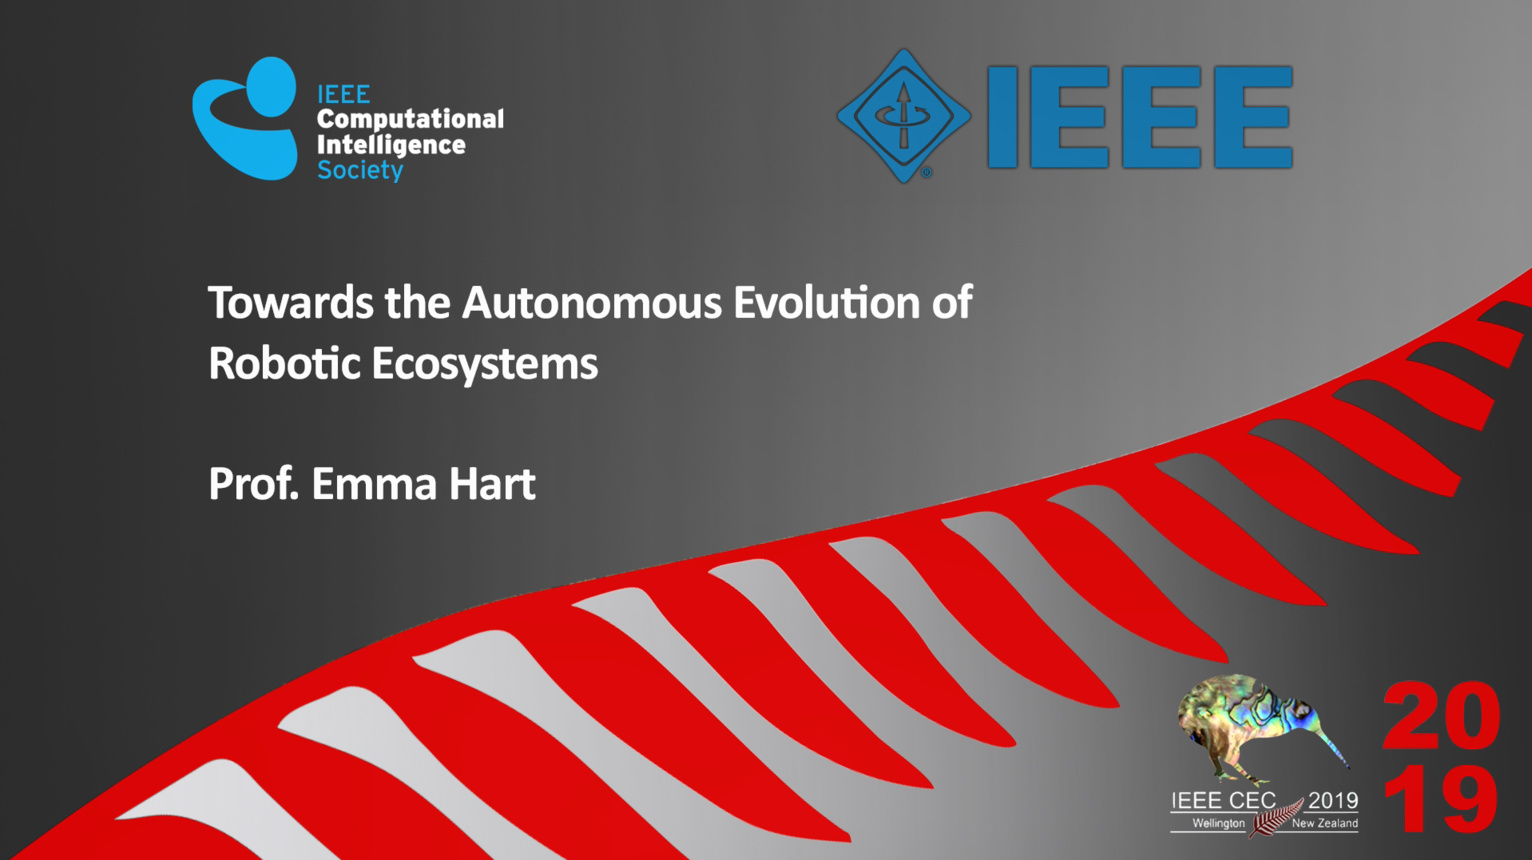 Towards the Autonomous Evolution of Robotic Ecosystems